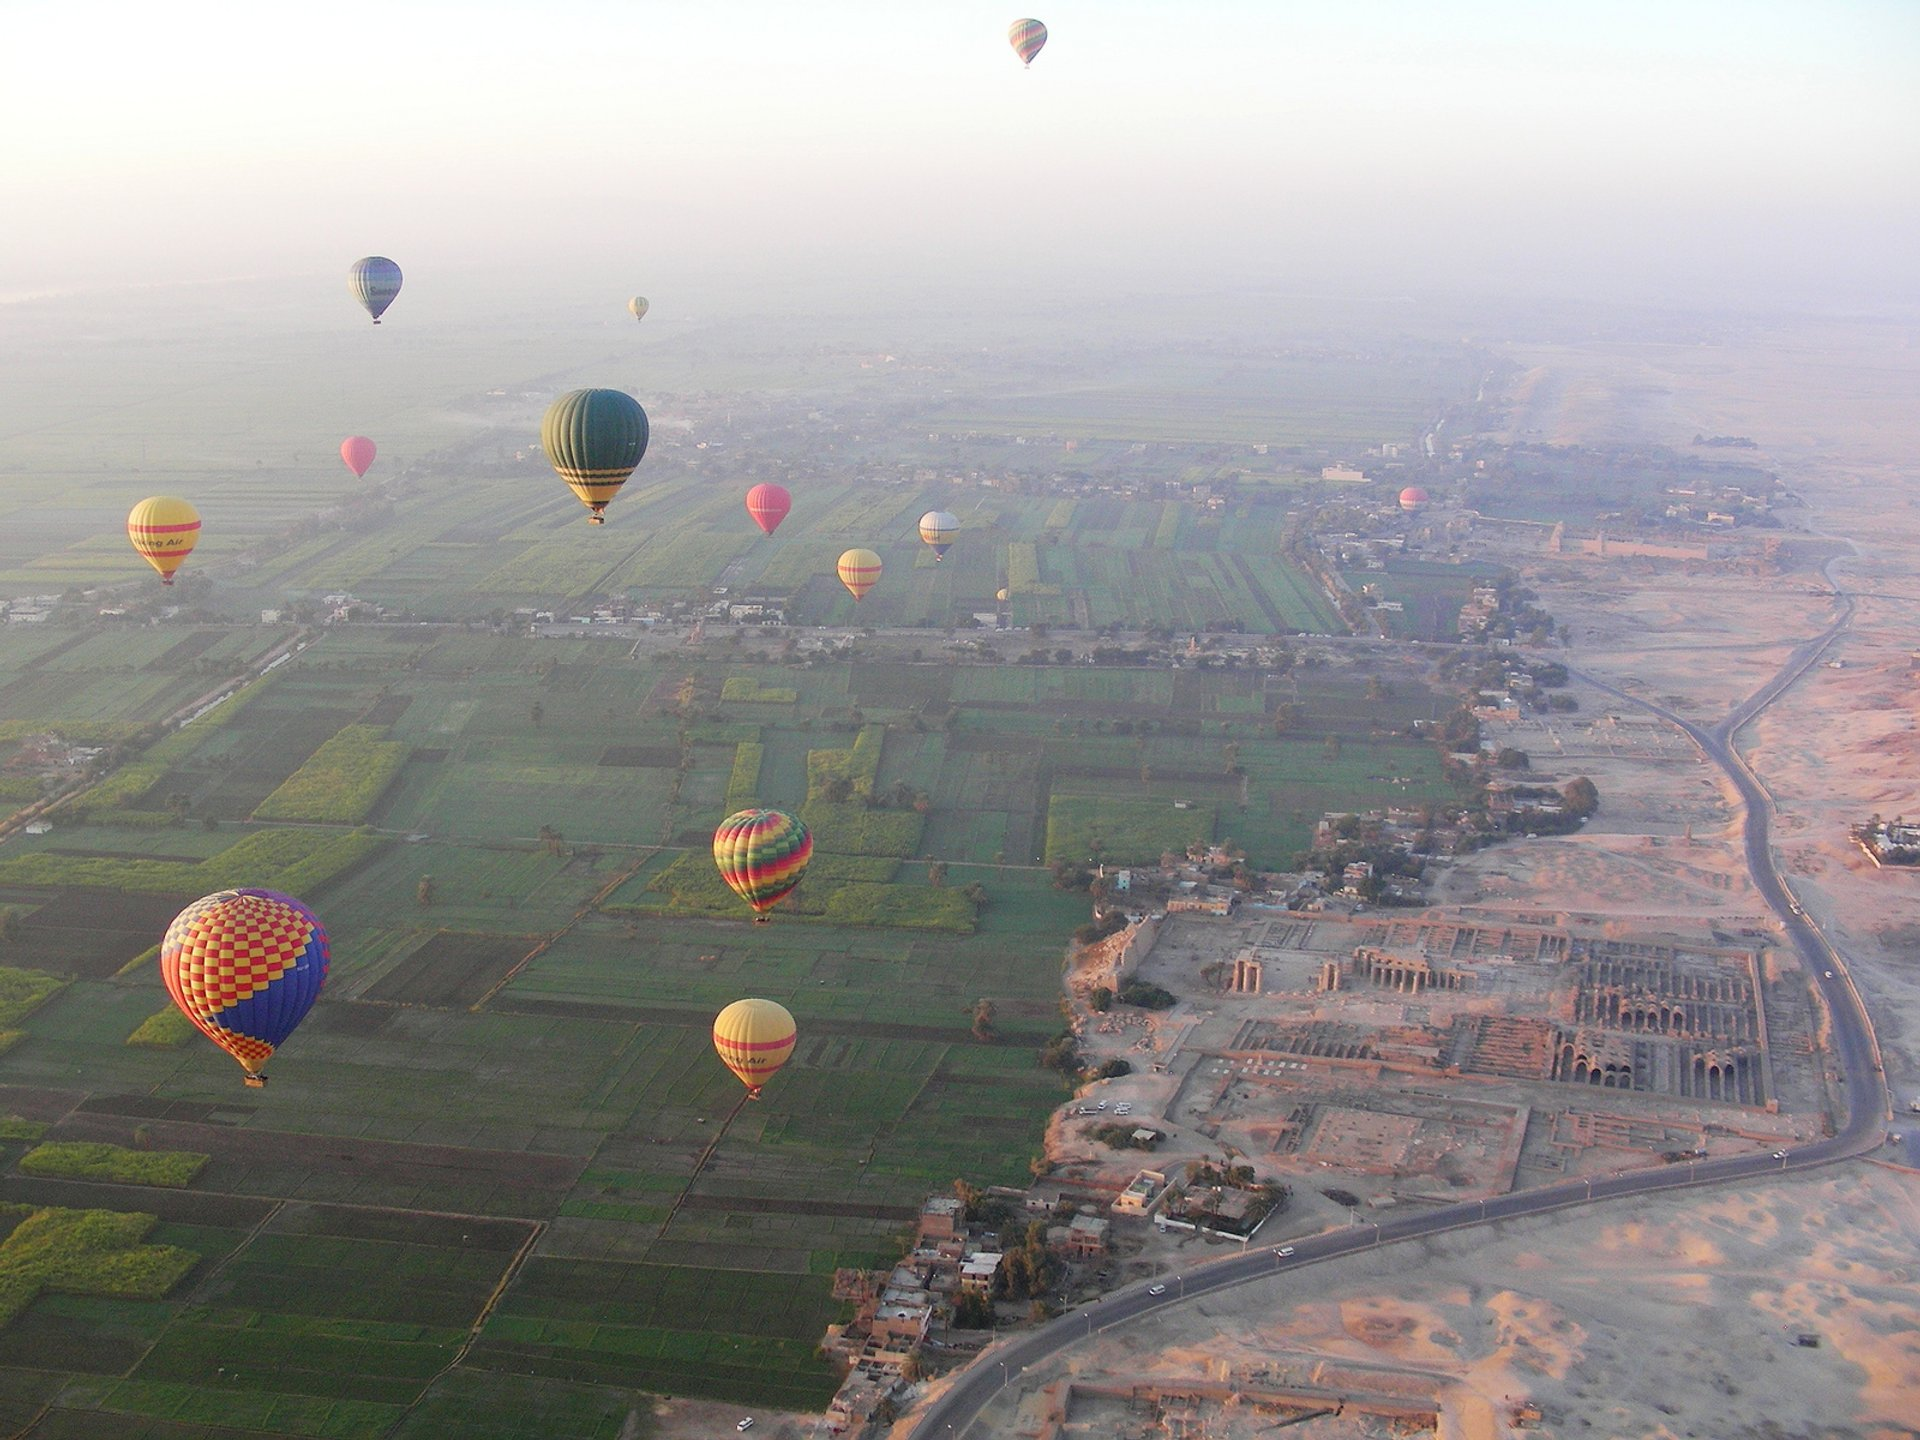 Best time to see Hot Air Balloon Festival in Luxor in Egypt 2020